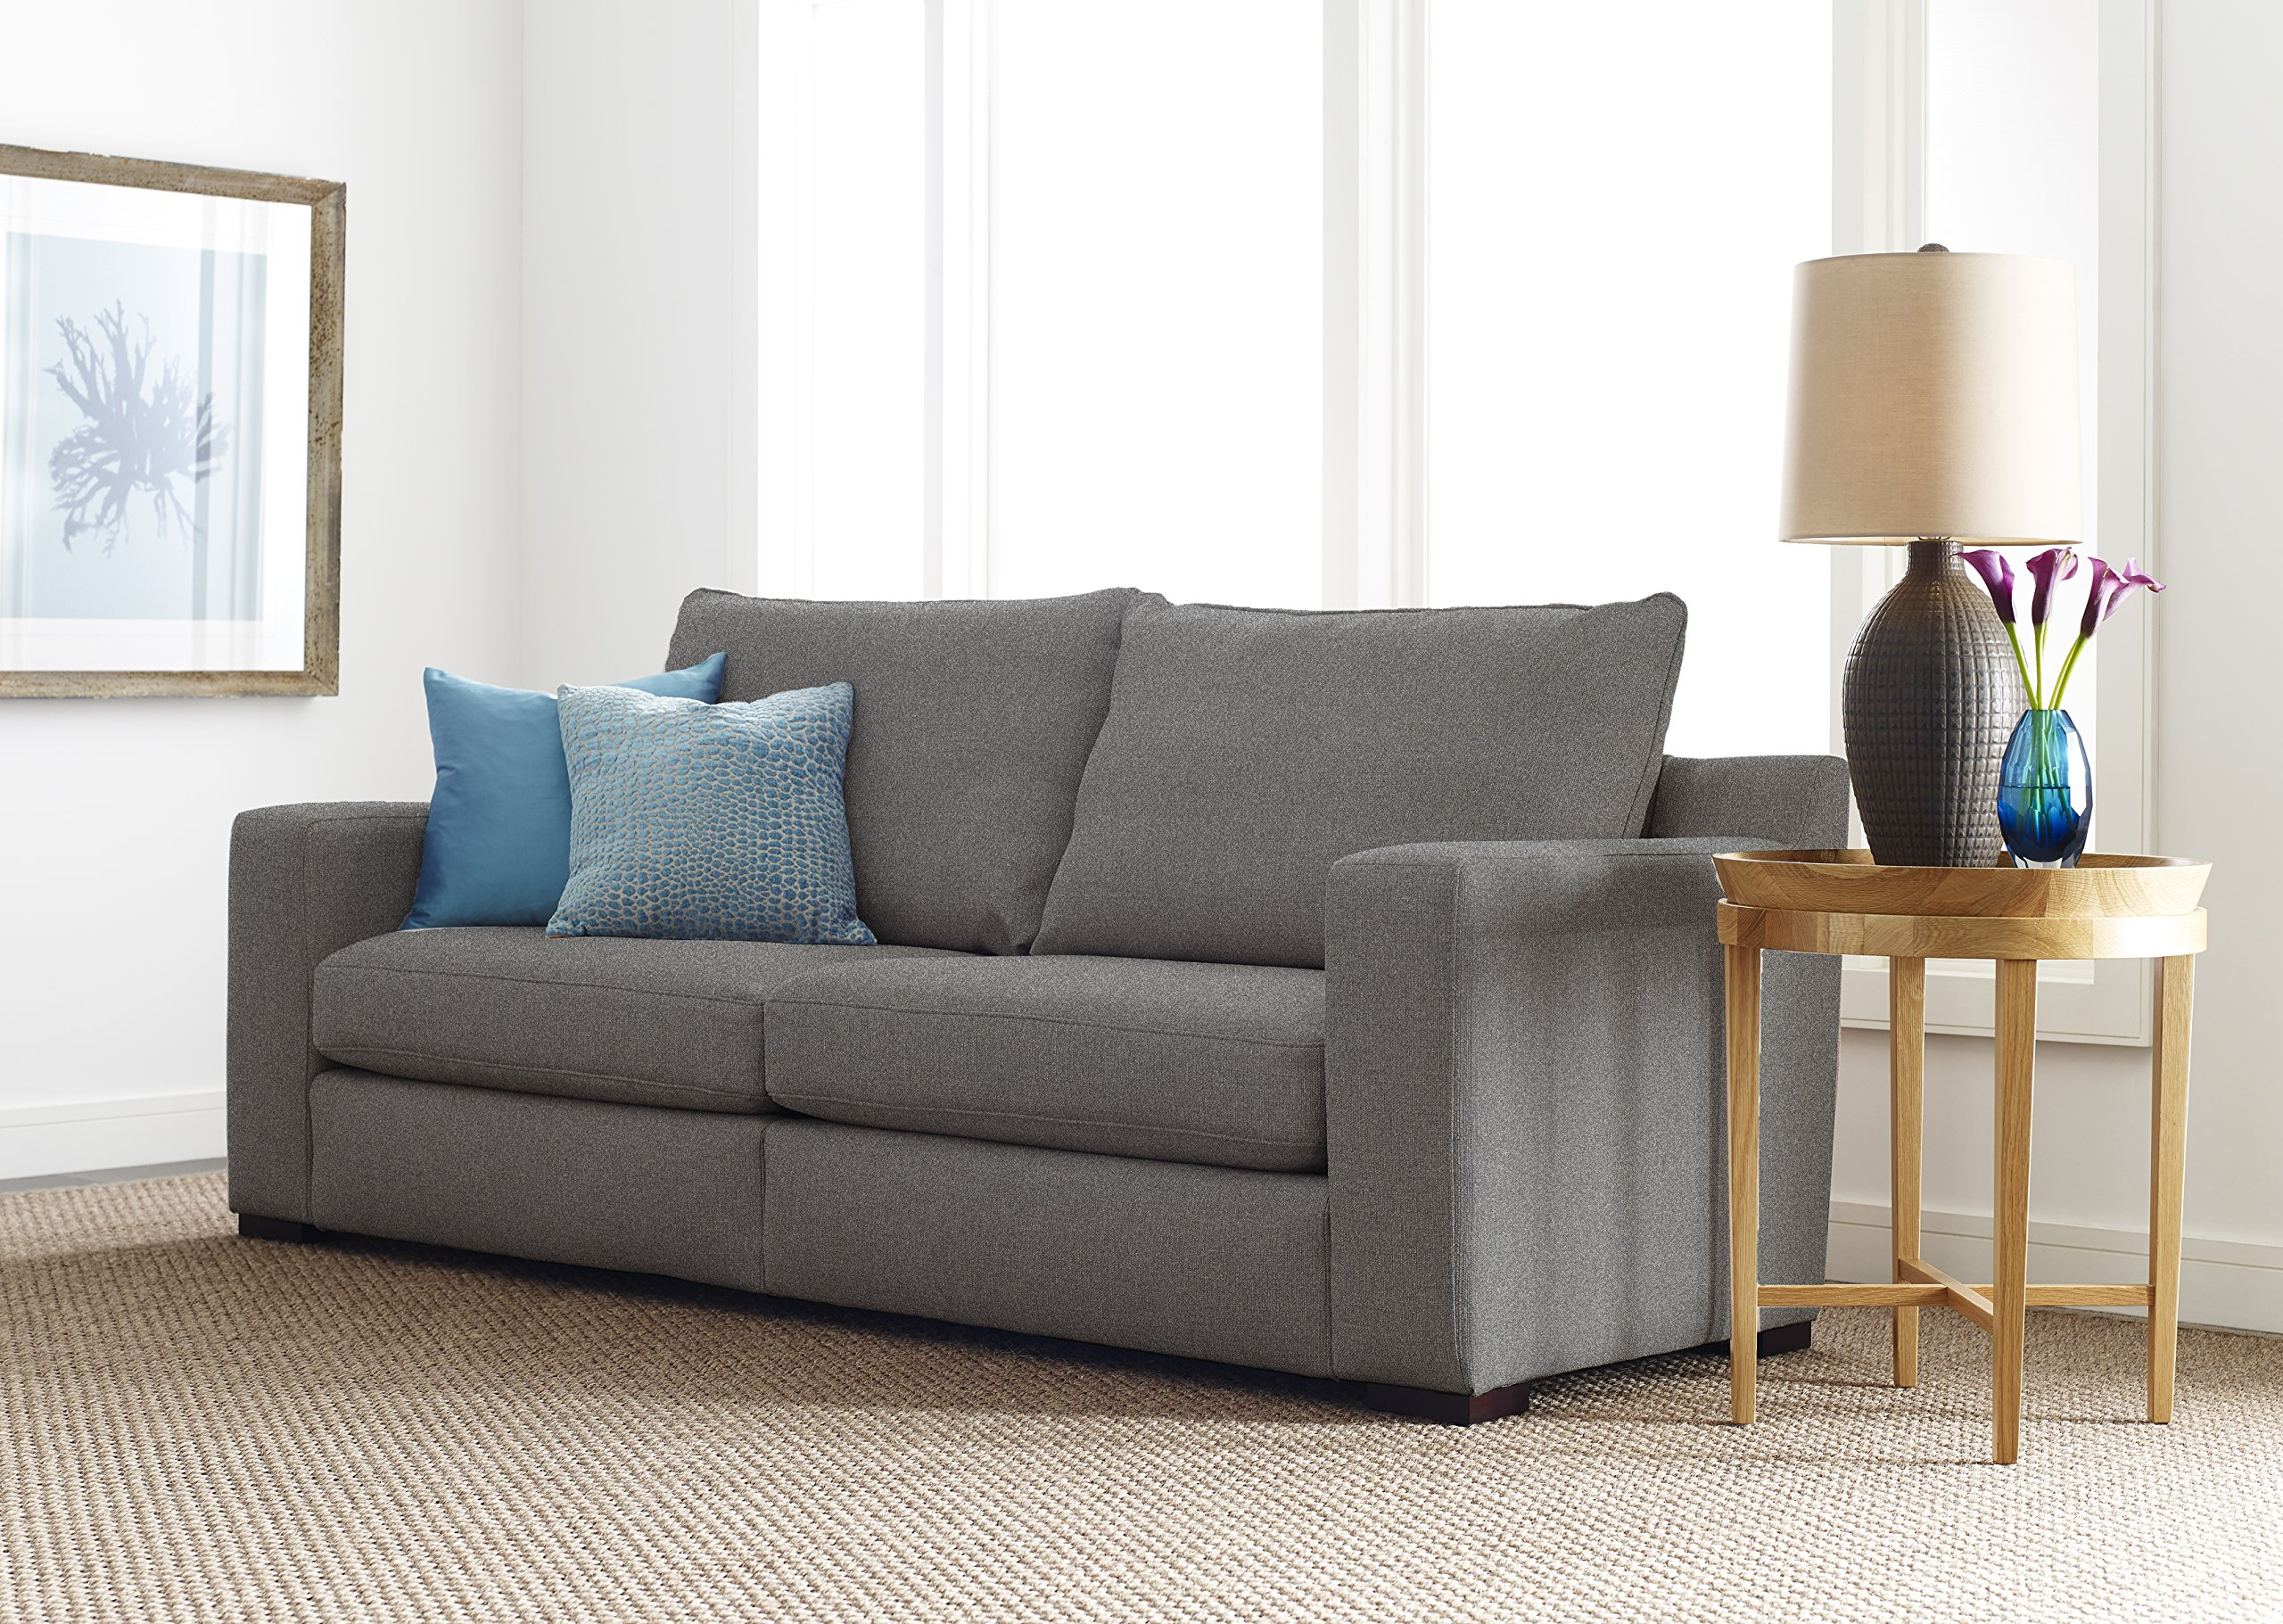 "Serta Geneva 78"" Sofa in Cozy Gray - Perfect sofa for small living spaces Trendy wide track Arm and low Back Choose from two neutral colors to match your decor - sofas-couches, living-room-furniture, living-room - A1q0B54bFLL -"